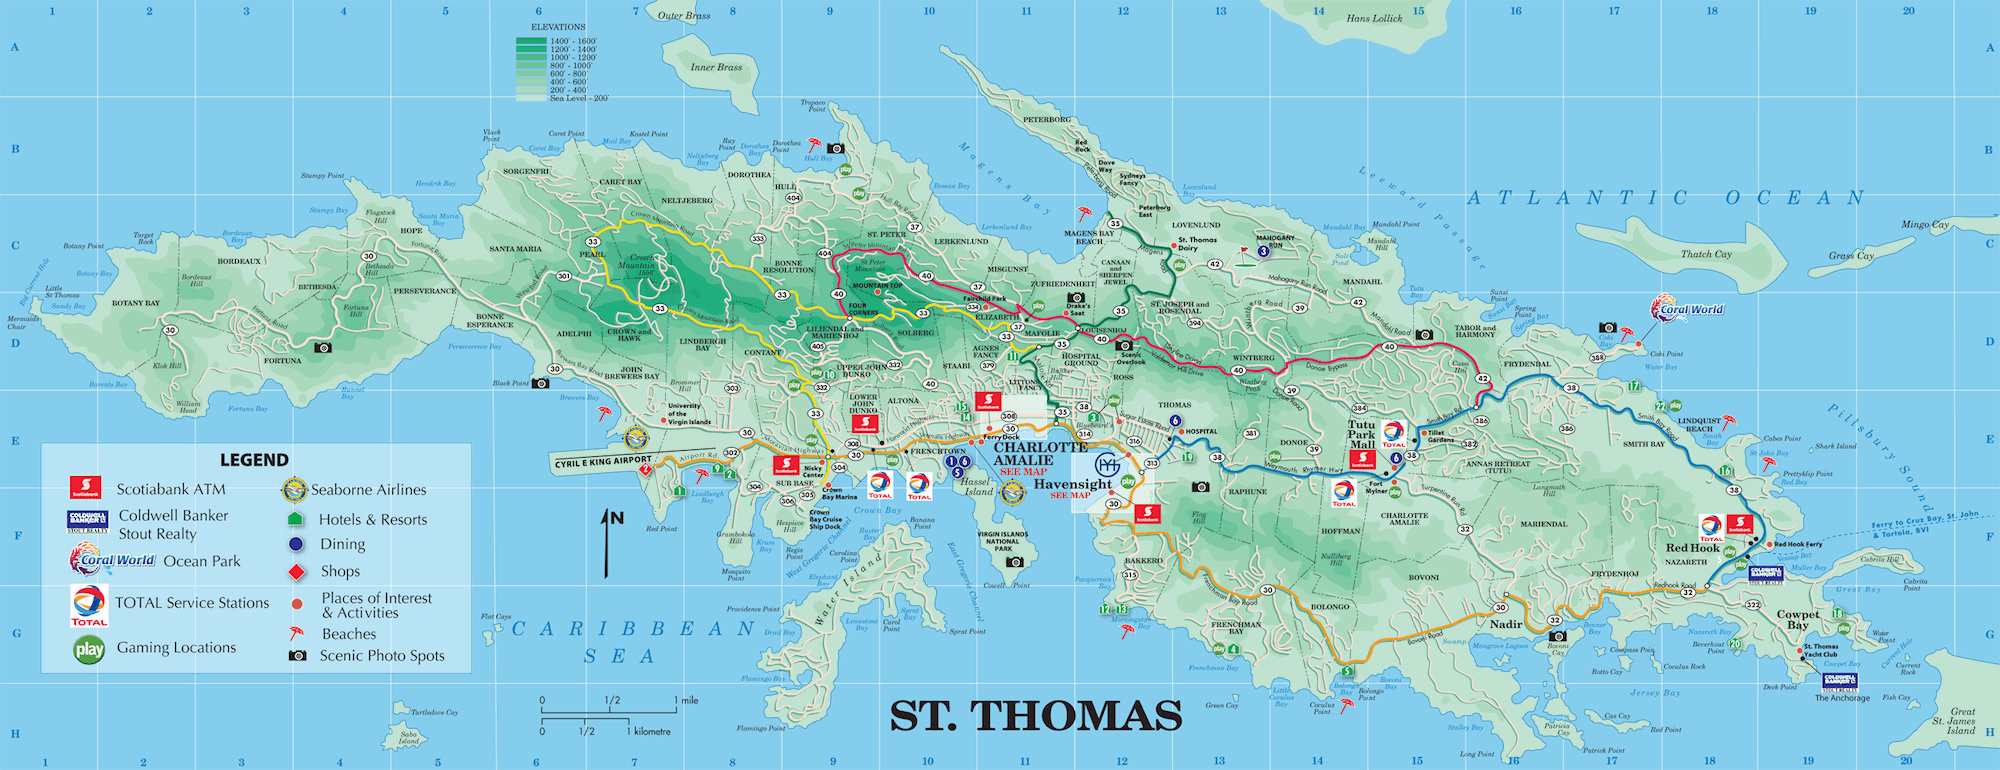 large detailed road and tourist map of st thomas u s virgin islands st thomas u s virgin islands large detailed road and tourist map